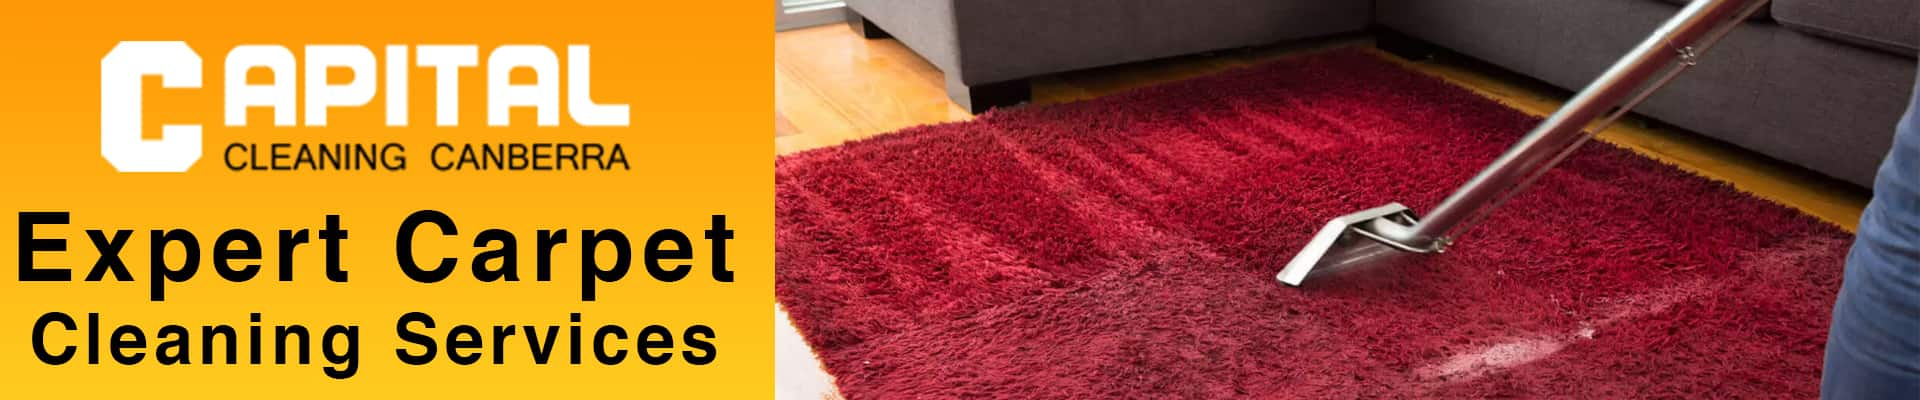 Expert Carpet Cleaning Services Greenway